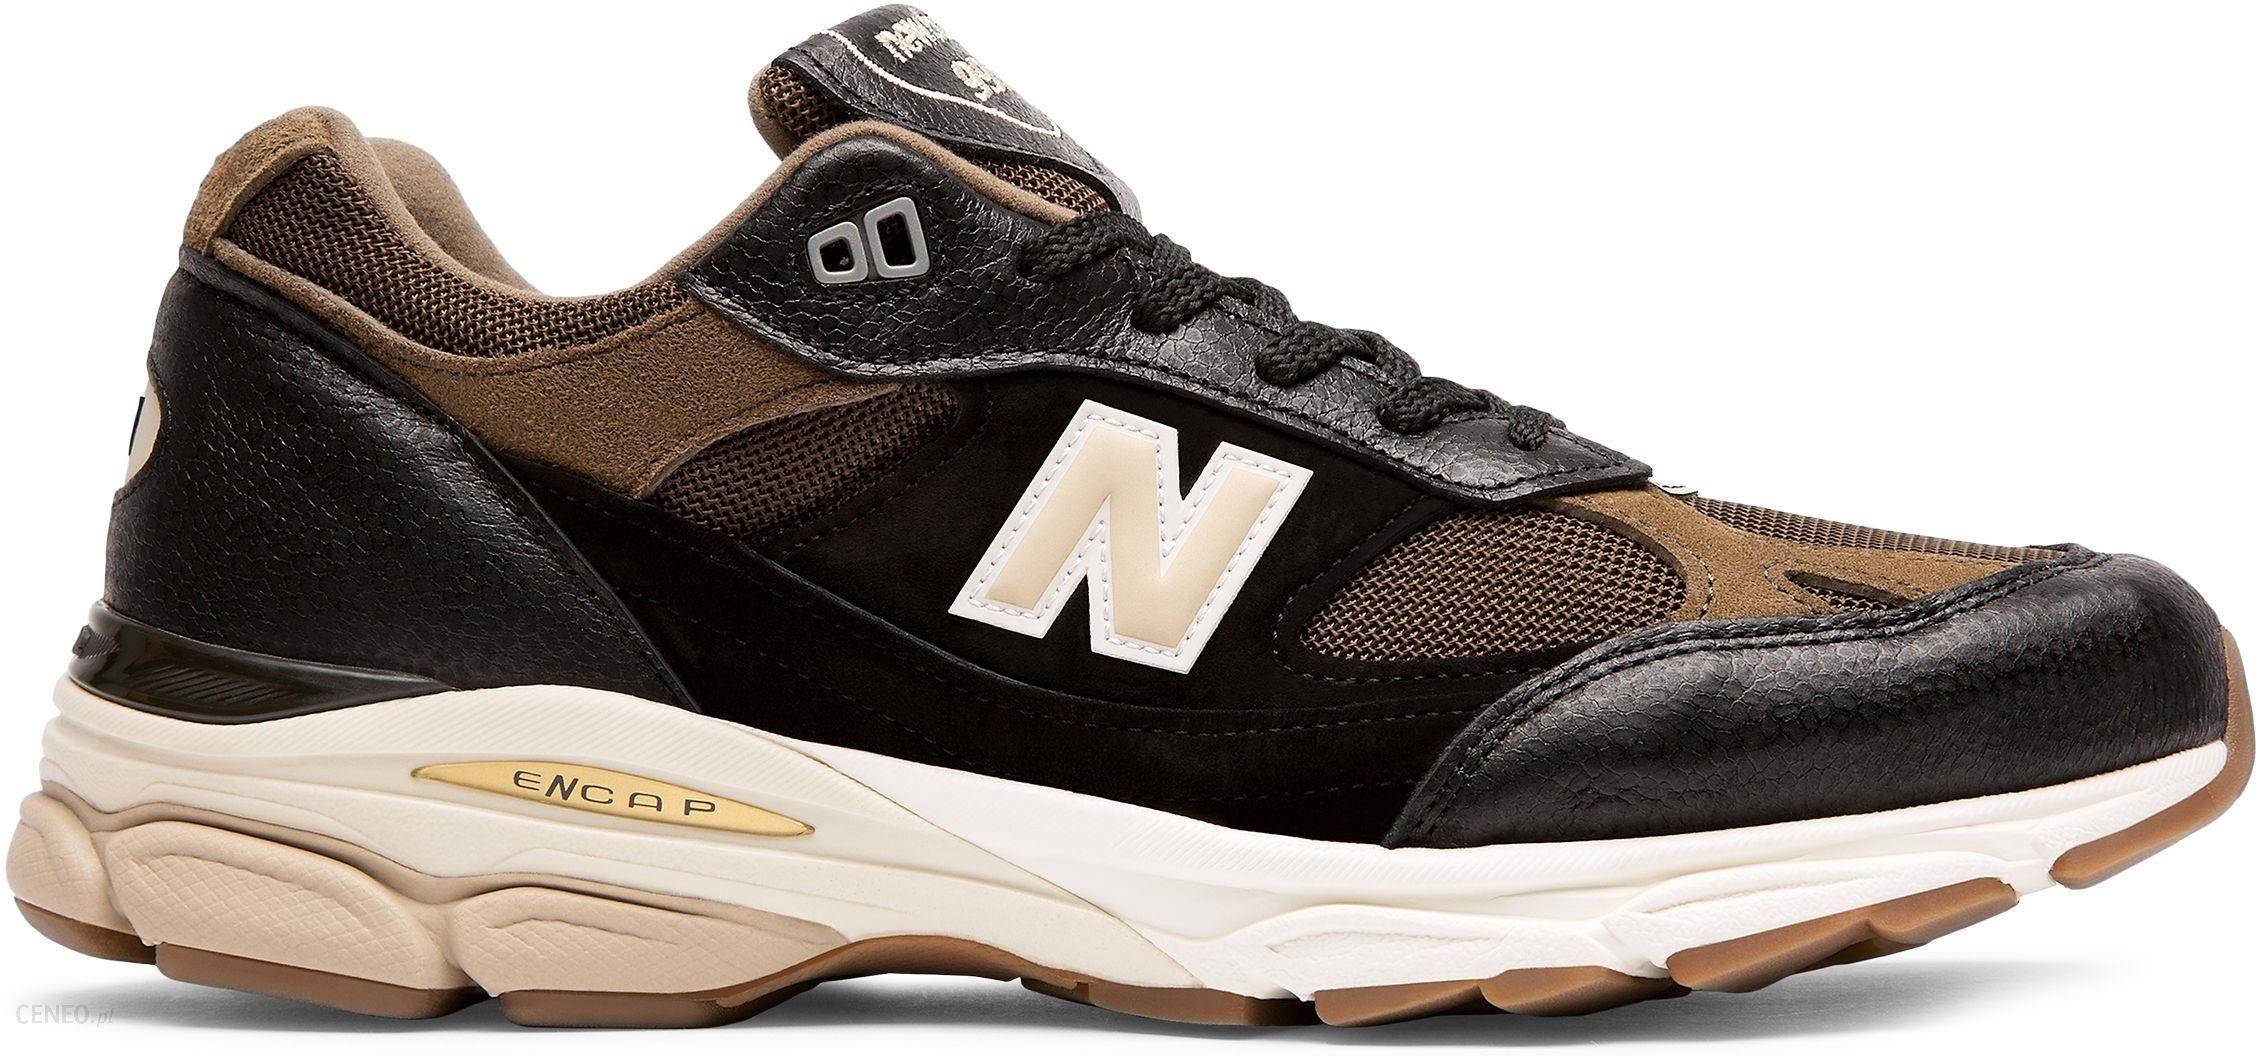 100% authentic 78c31 2135a New Balance 991.9 Made in UK Black with Olive (M9919CV) - zdjęcie 1